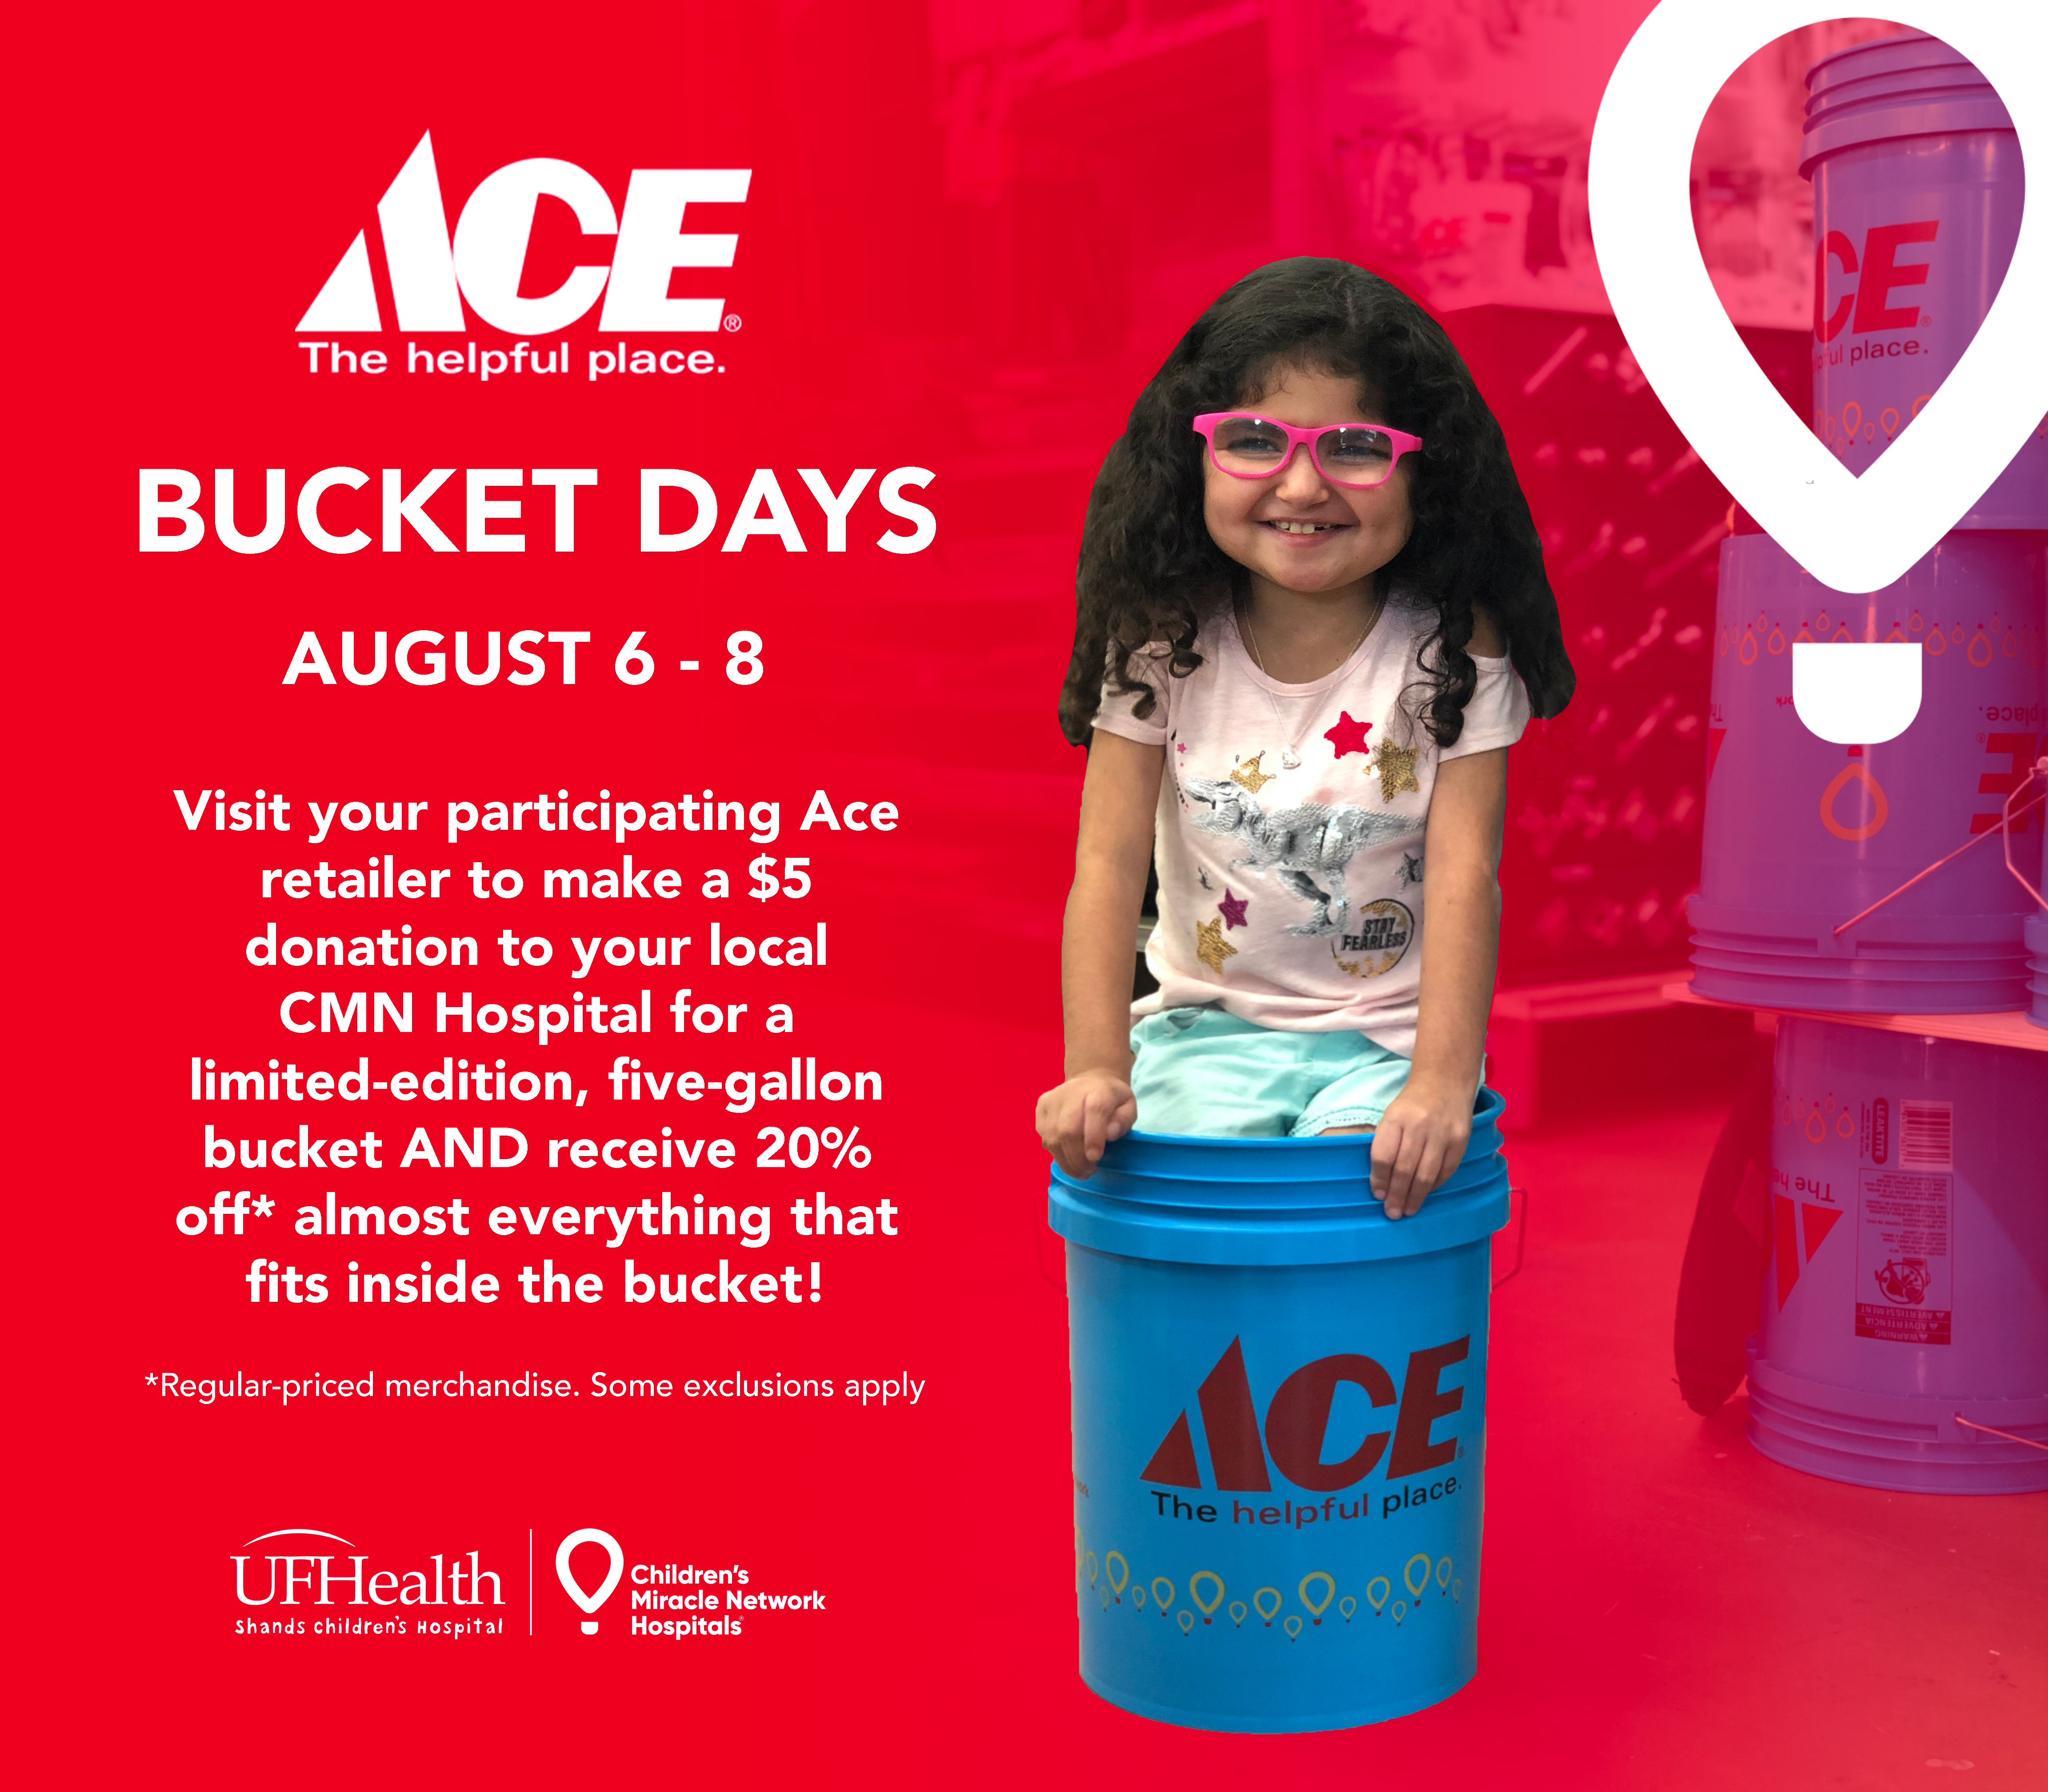 Ace Bucket Days run from August 6 - 8.